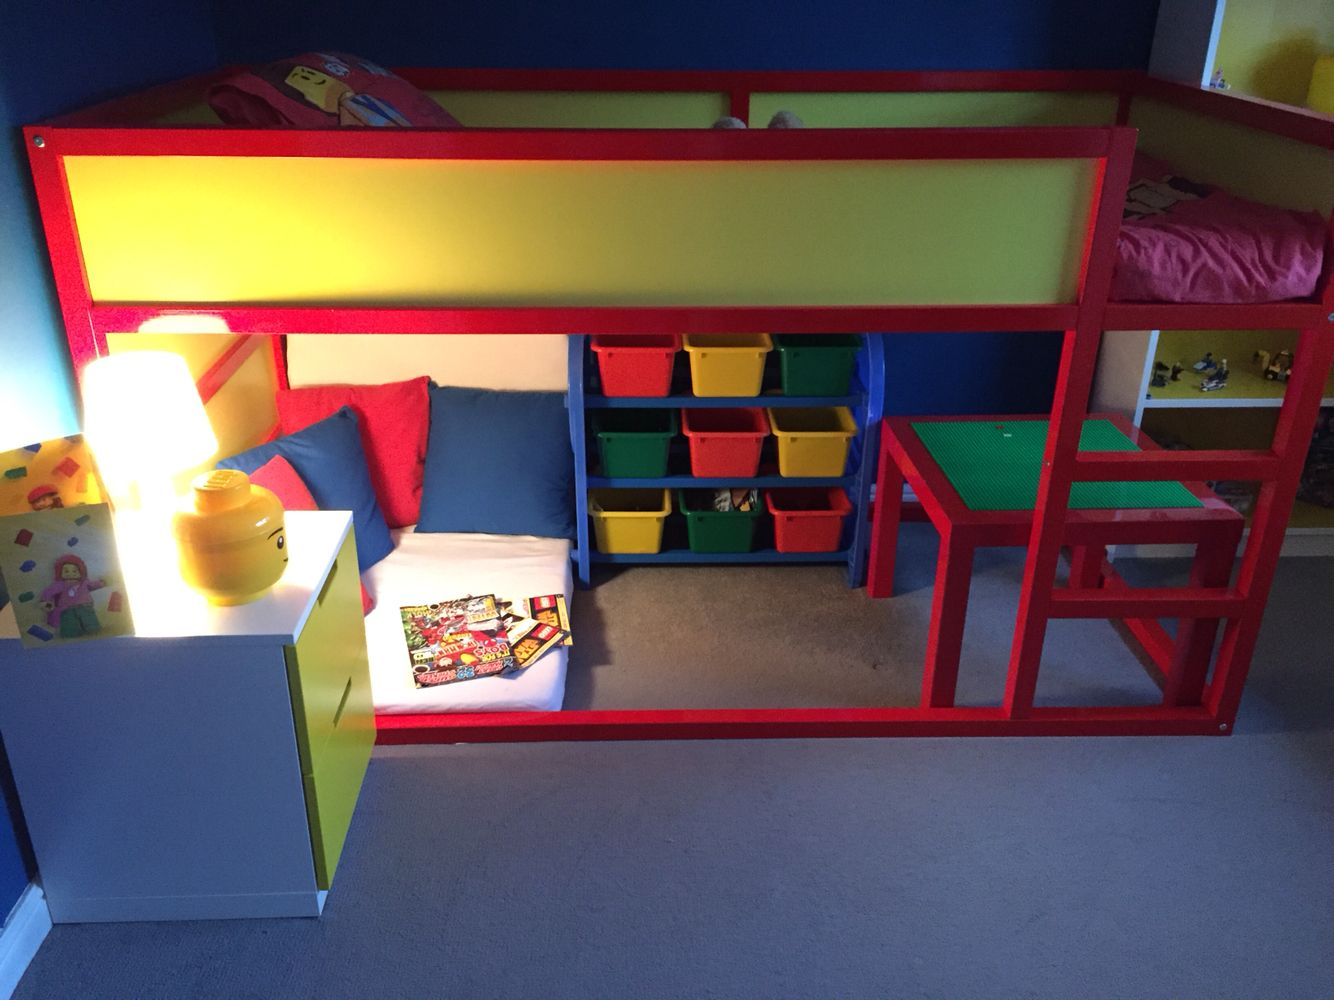 Lego Bedroom Completed Ikea Kura Bed Hack Milo 39 S Room Pinterest Lego Bedroom Ikea Kura